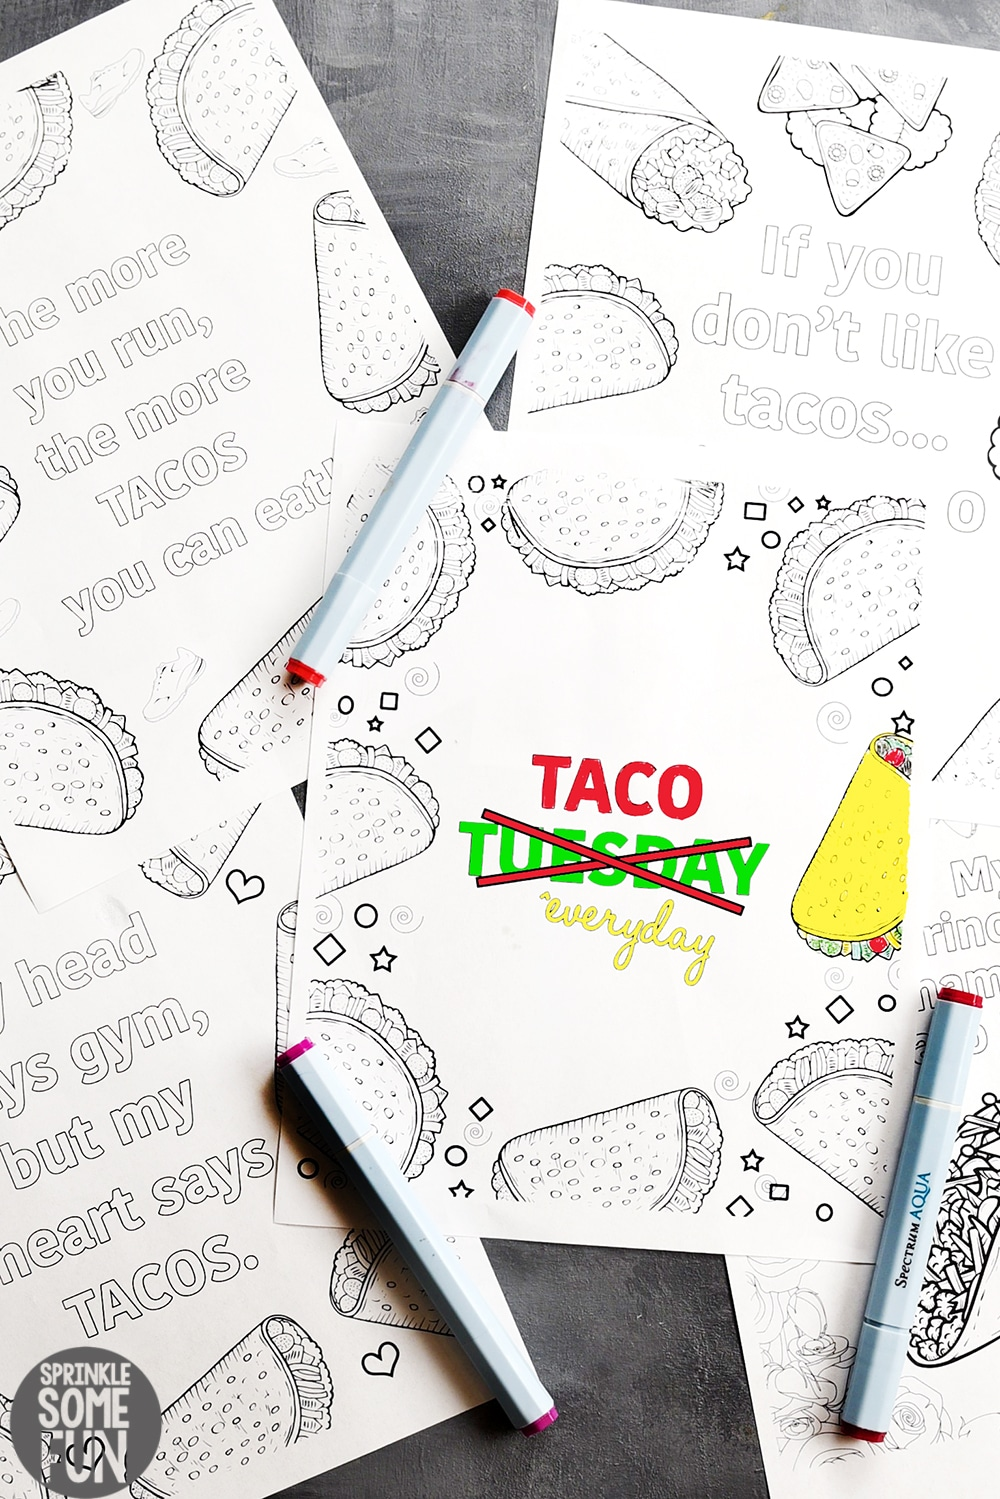 5 Free Funny Taco Quotes Coloring Pages ⋆ Sprinkle Some Fun